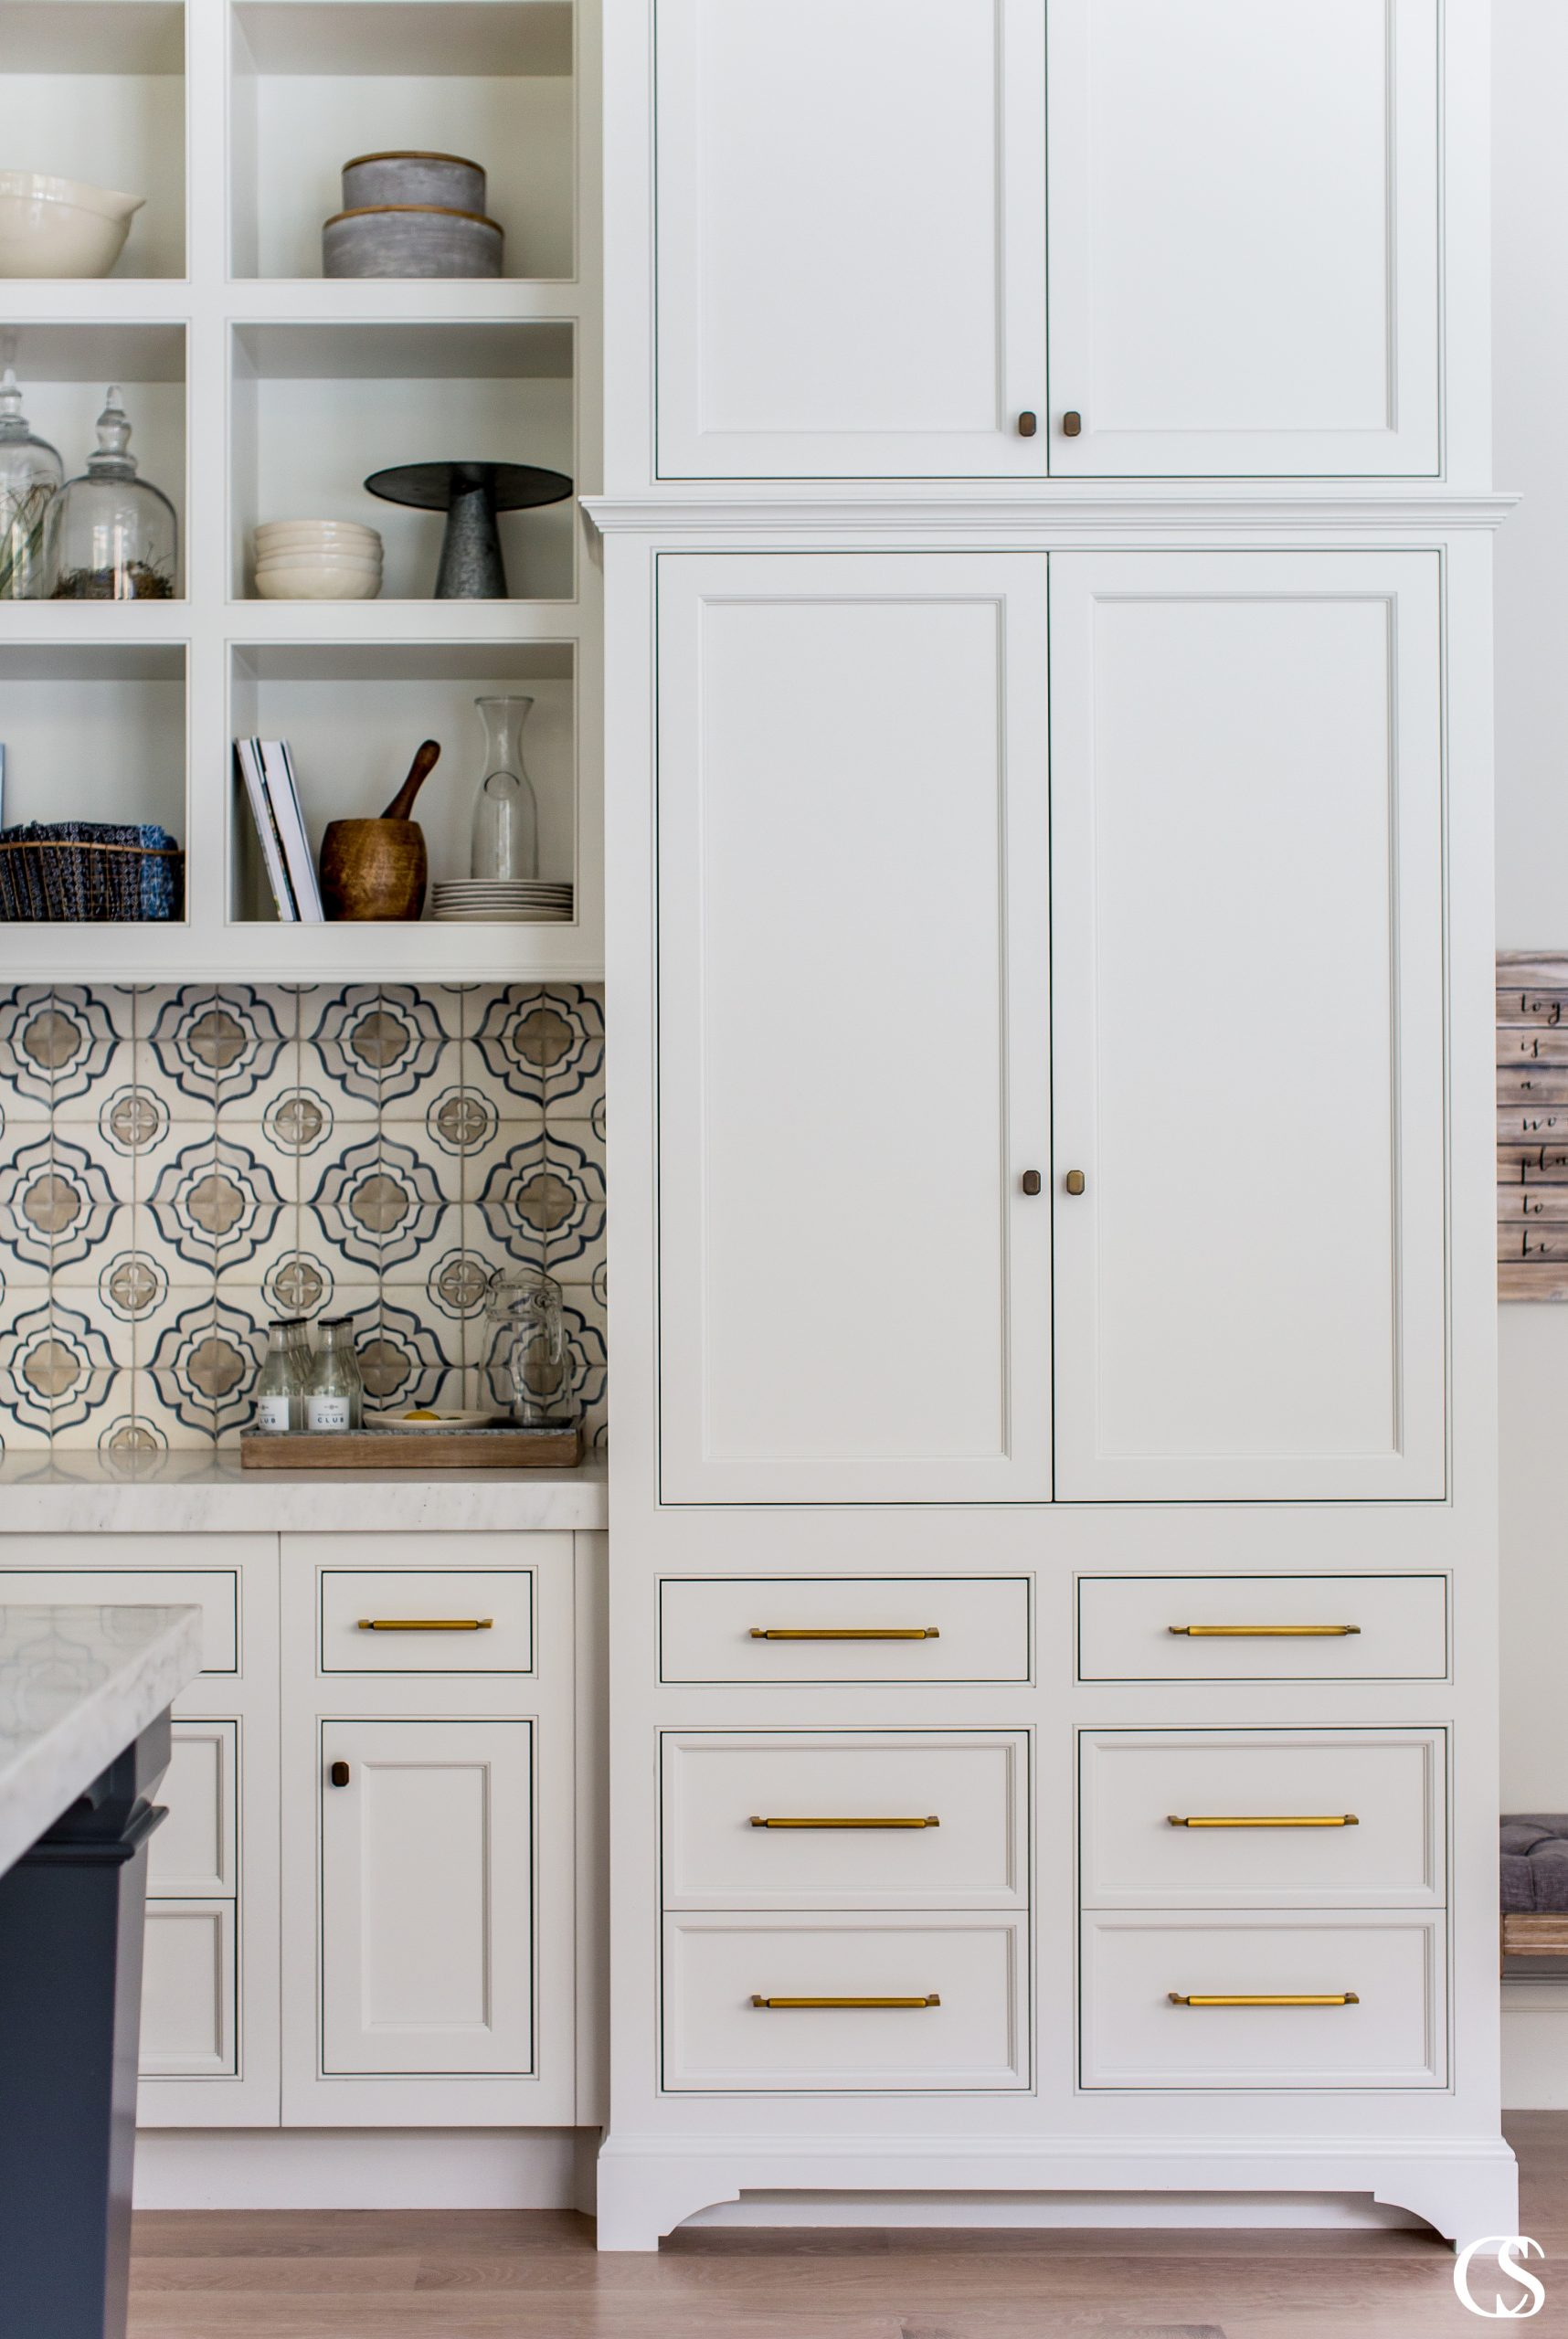 We love the combination of hardware styles mixed with a detailed tile backsplash in this set of custom white kitchen cabinets.